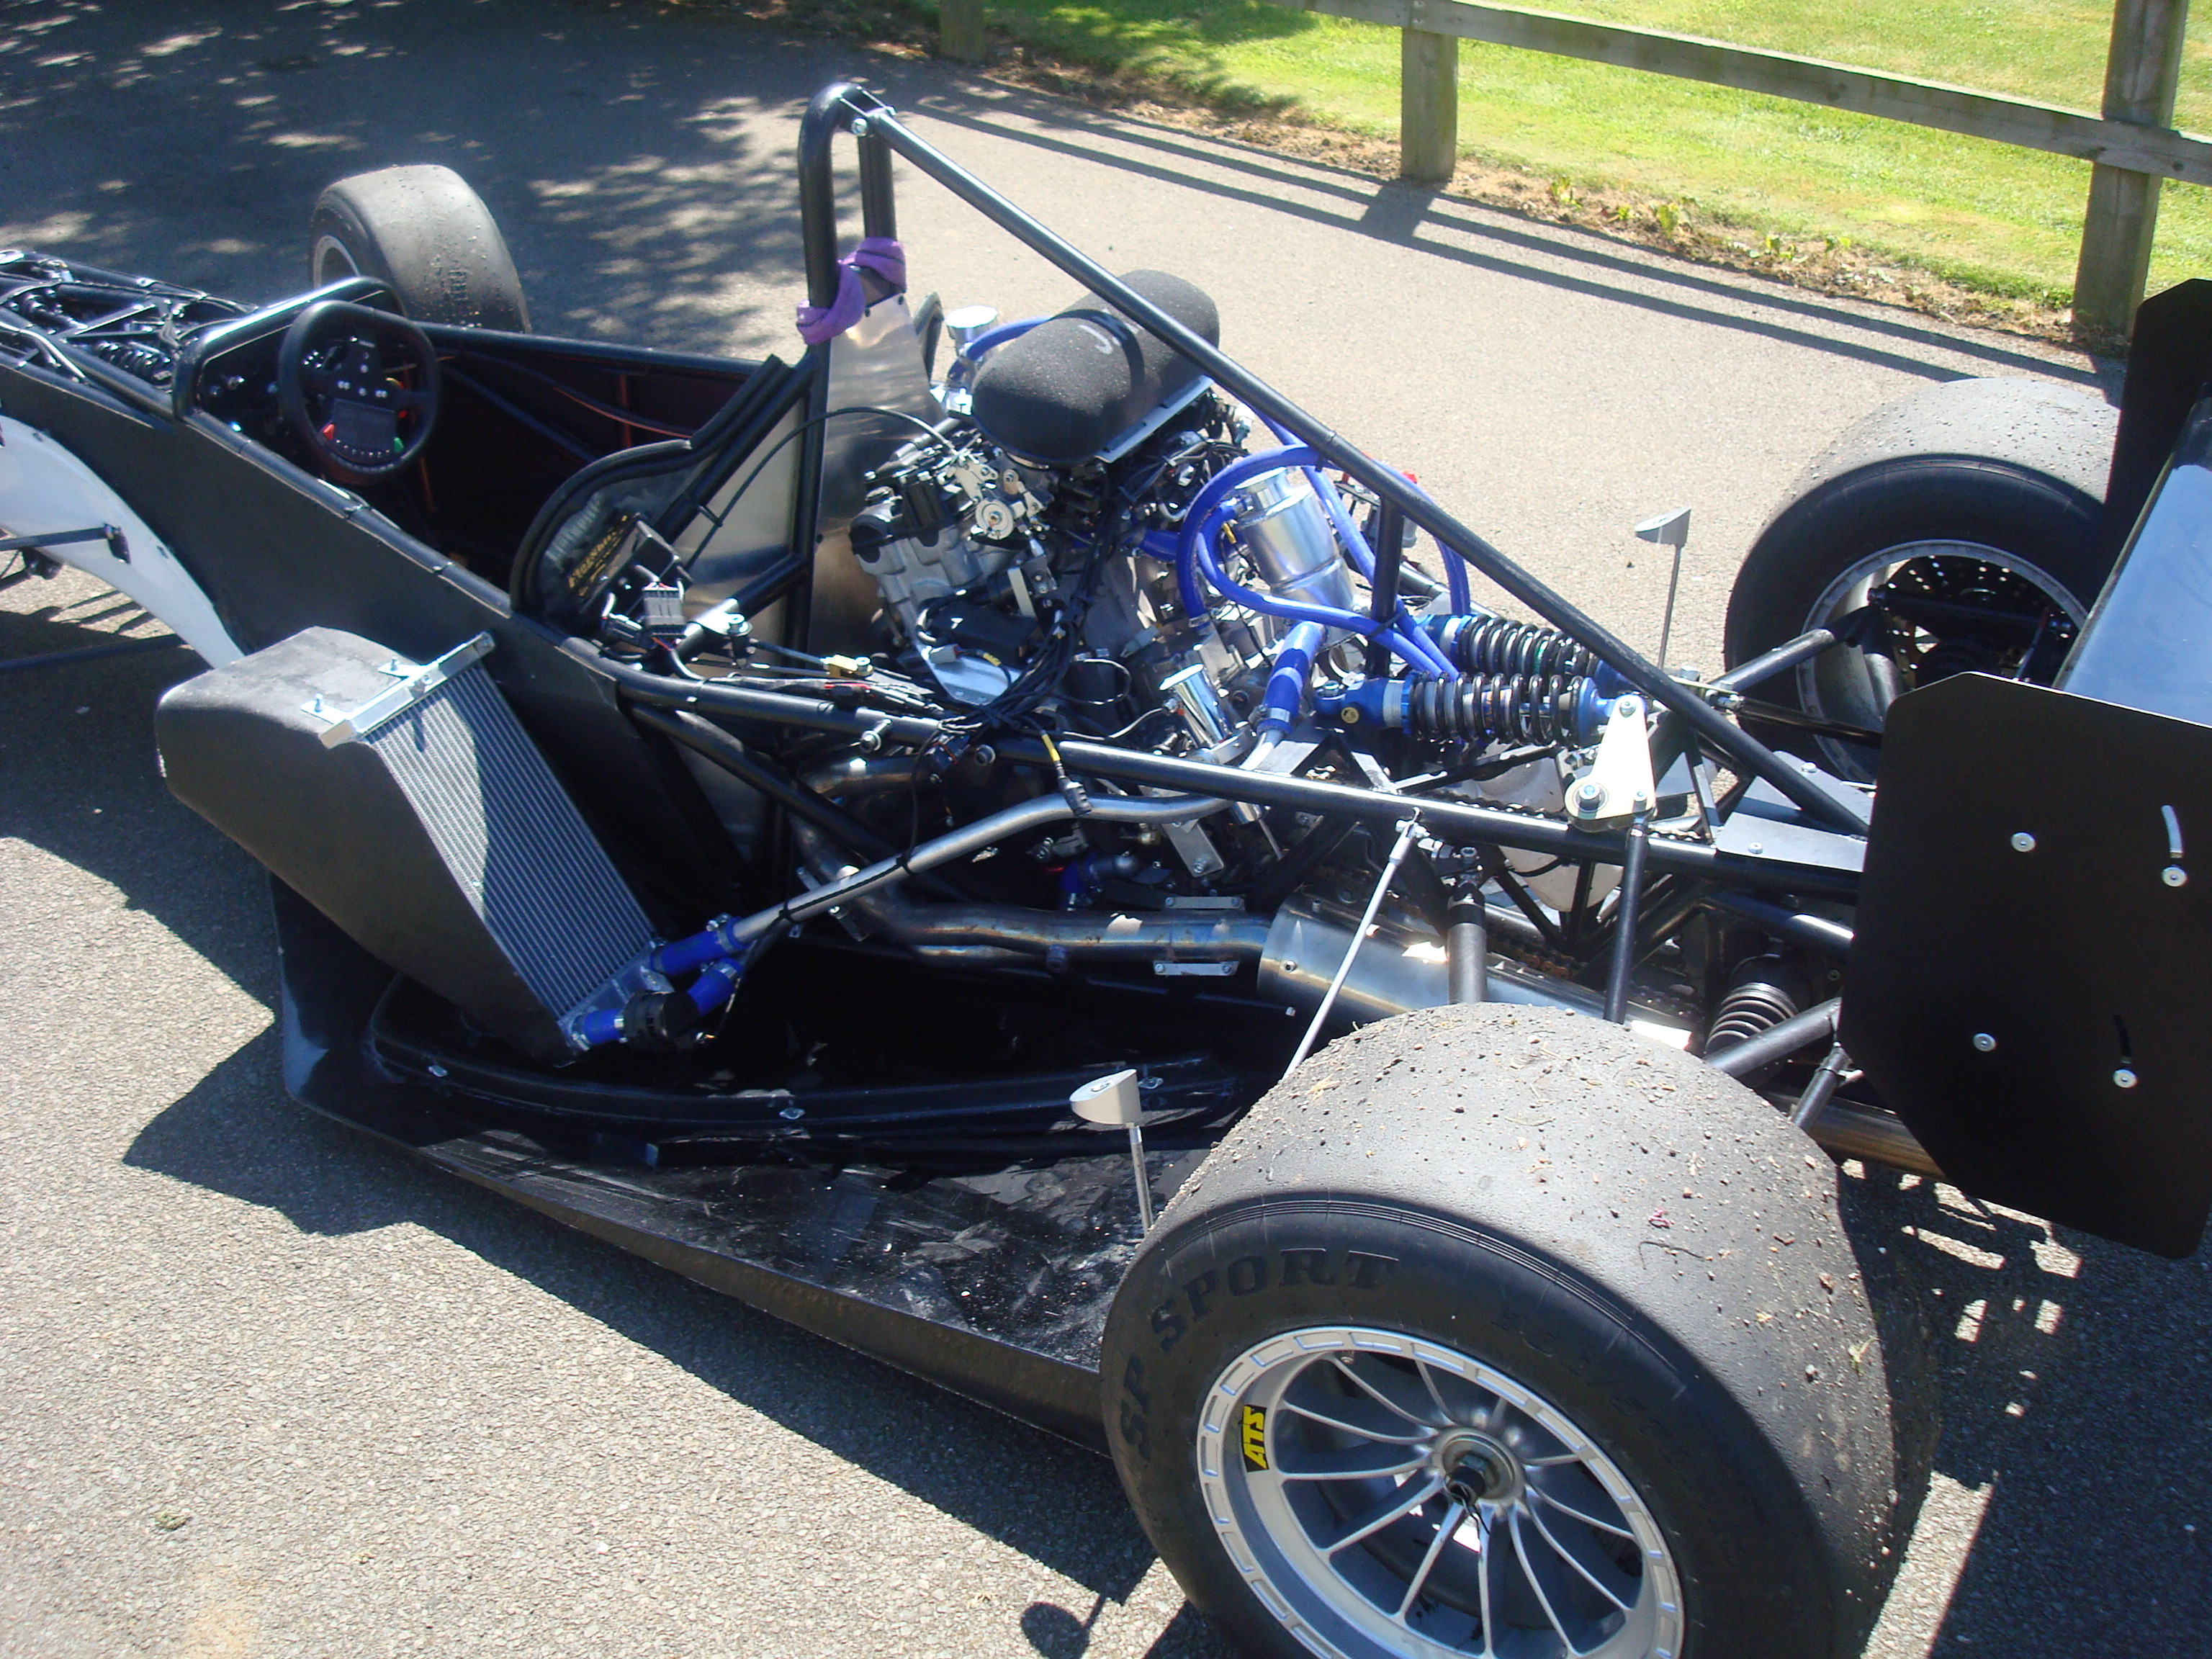 Radical Race Cars For Sale Uk